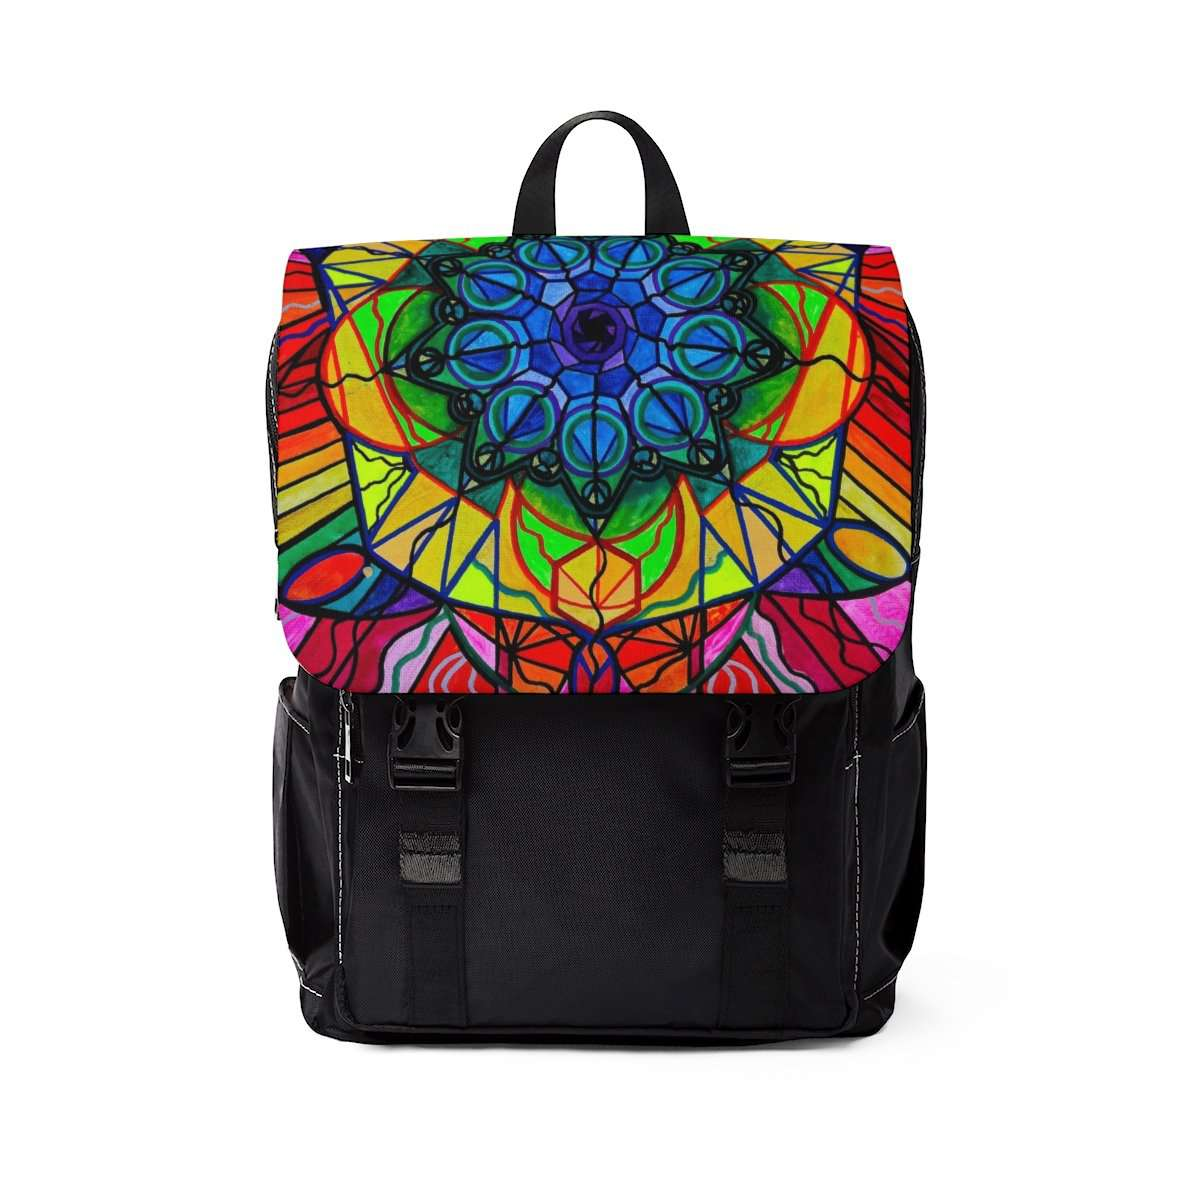 Creativity - Unisex Casual Shoulder Backpack